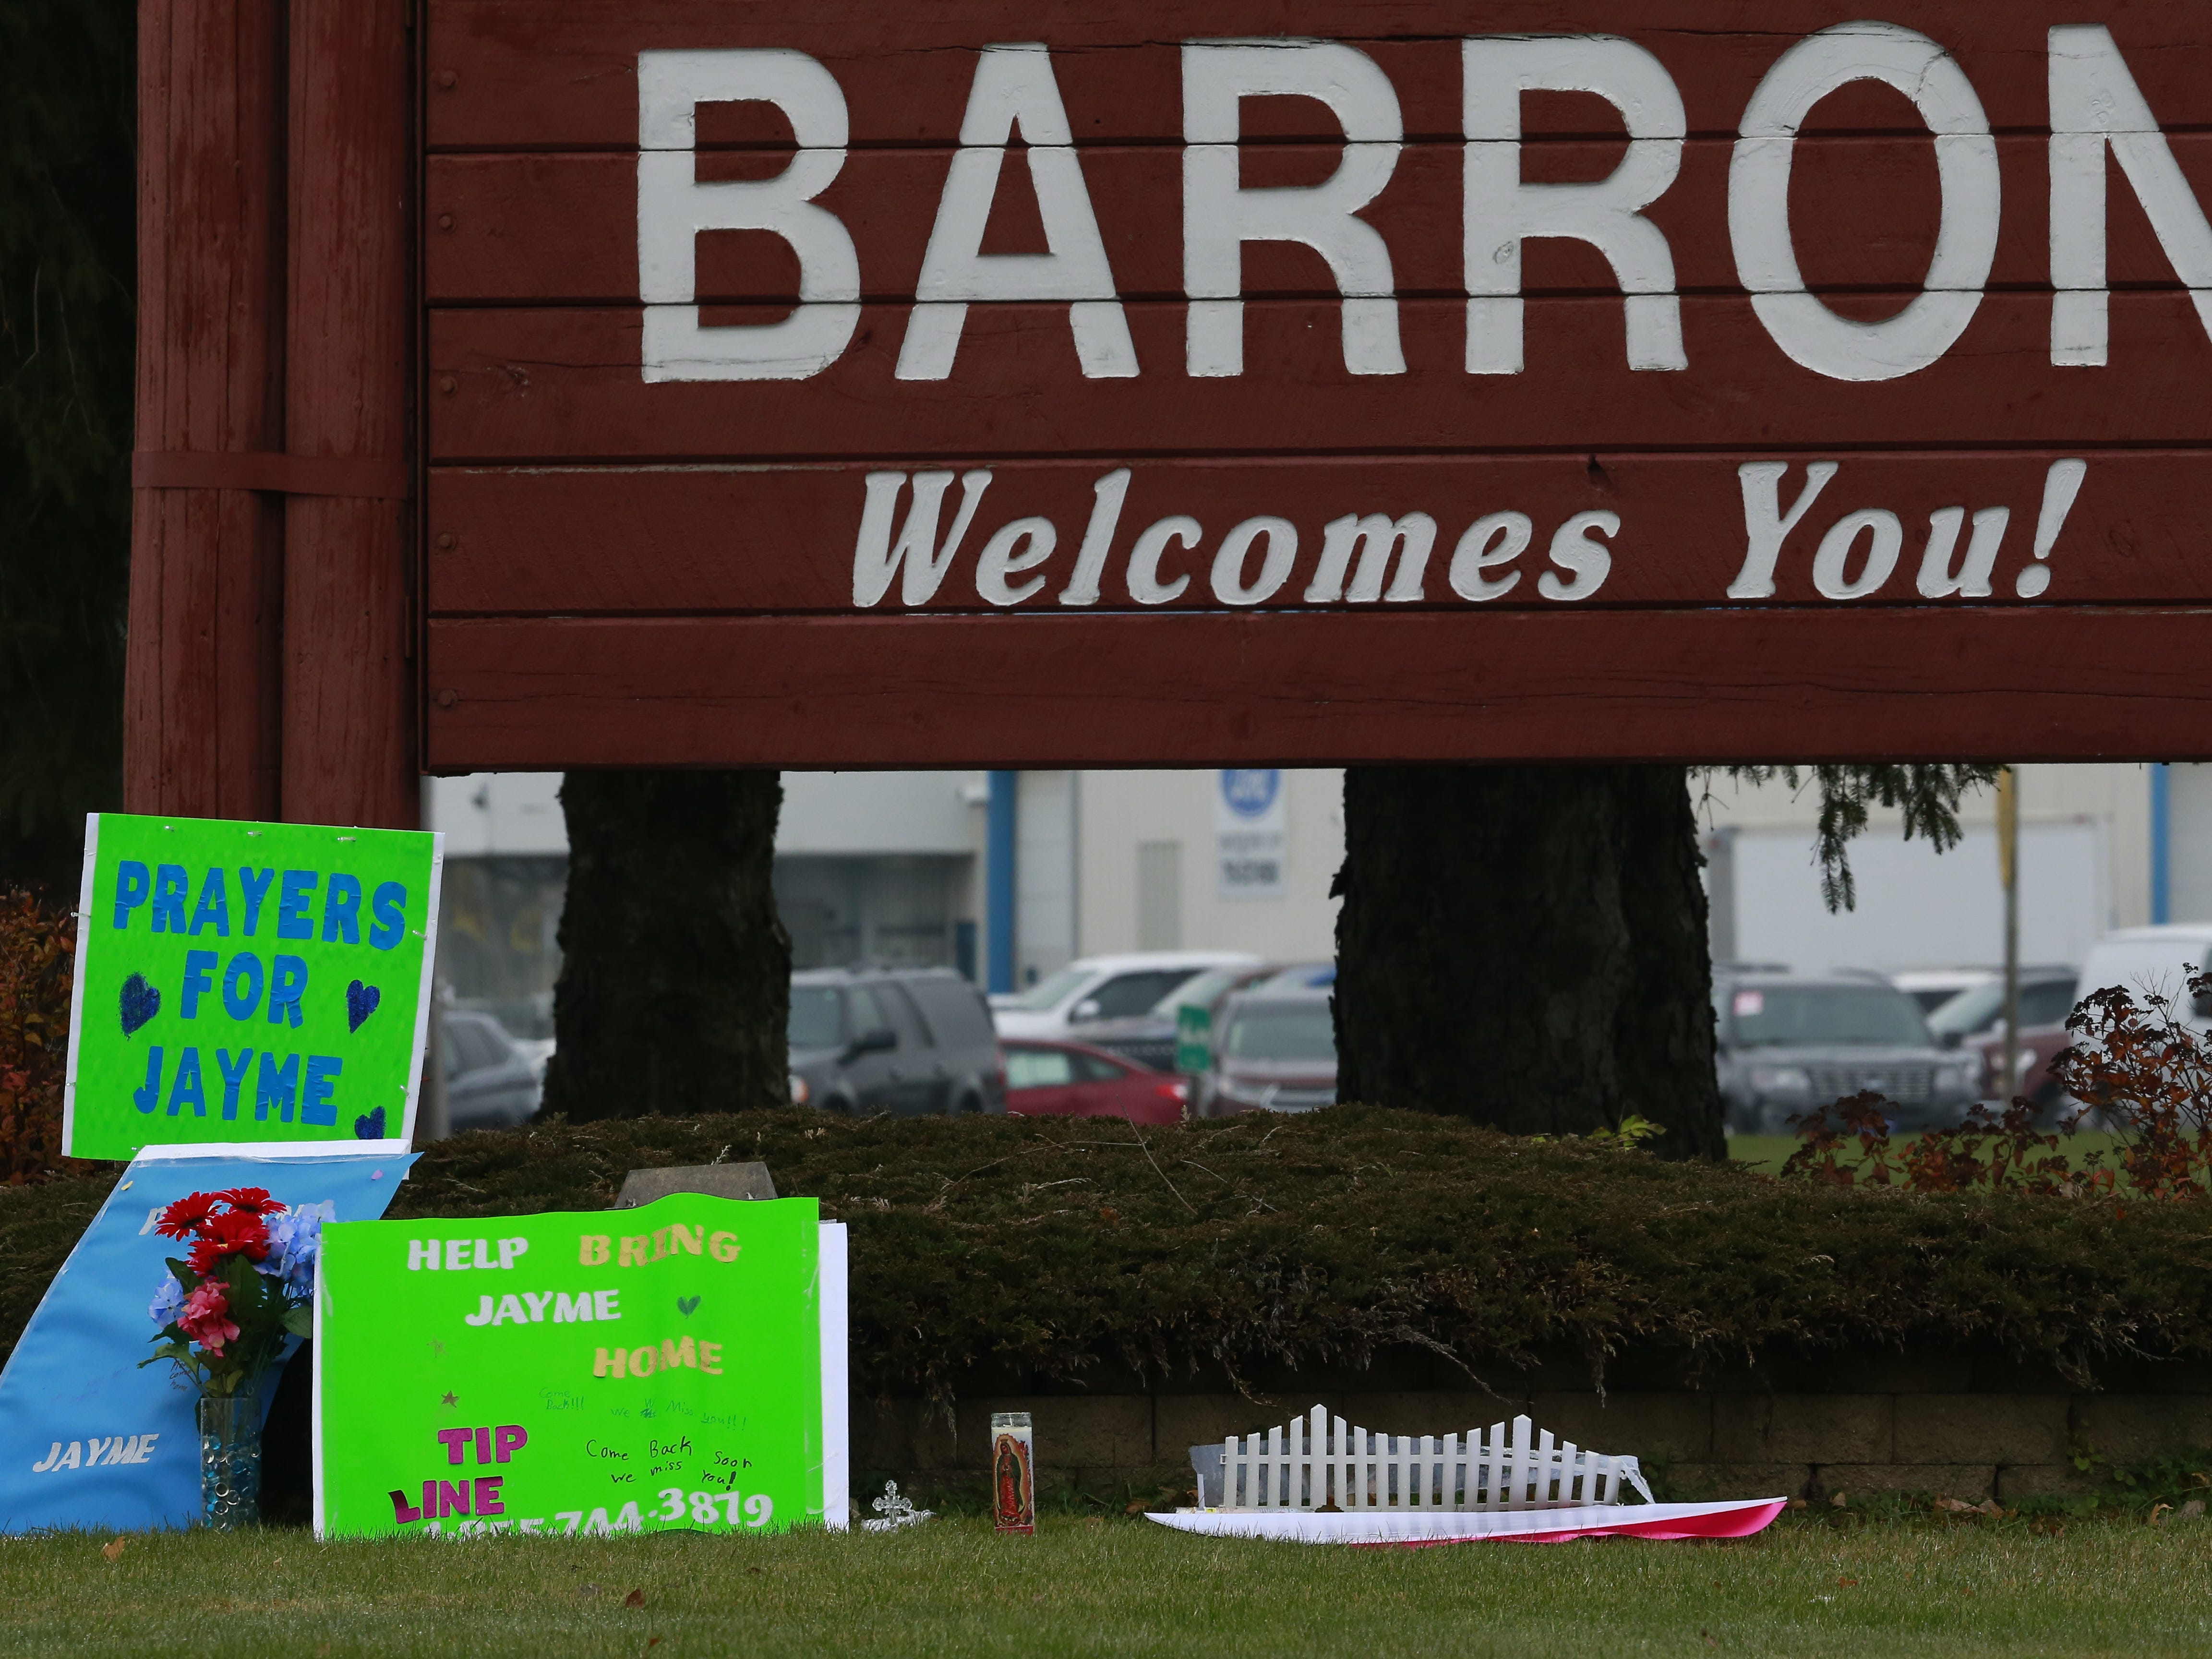 "Signs and flowers placed under the ""Barron Welcomes You!"" sign on Saturday reference the urgent efforts to find 13-year-old Jayme Closs, who has been missing since Oct. 15. Early that morning, her parents James and Denise Closs were found dead in their Barron home, and their deaths have been ruled homicides. Jayme has been missing ever since and is considered endangered."